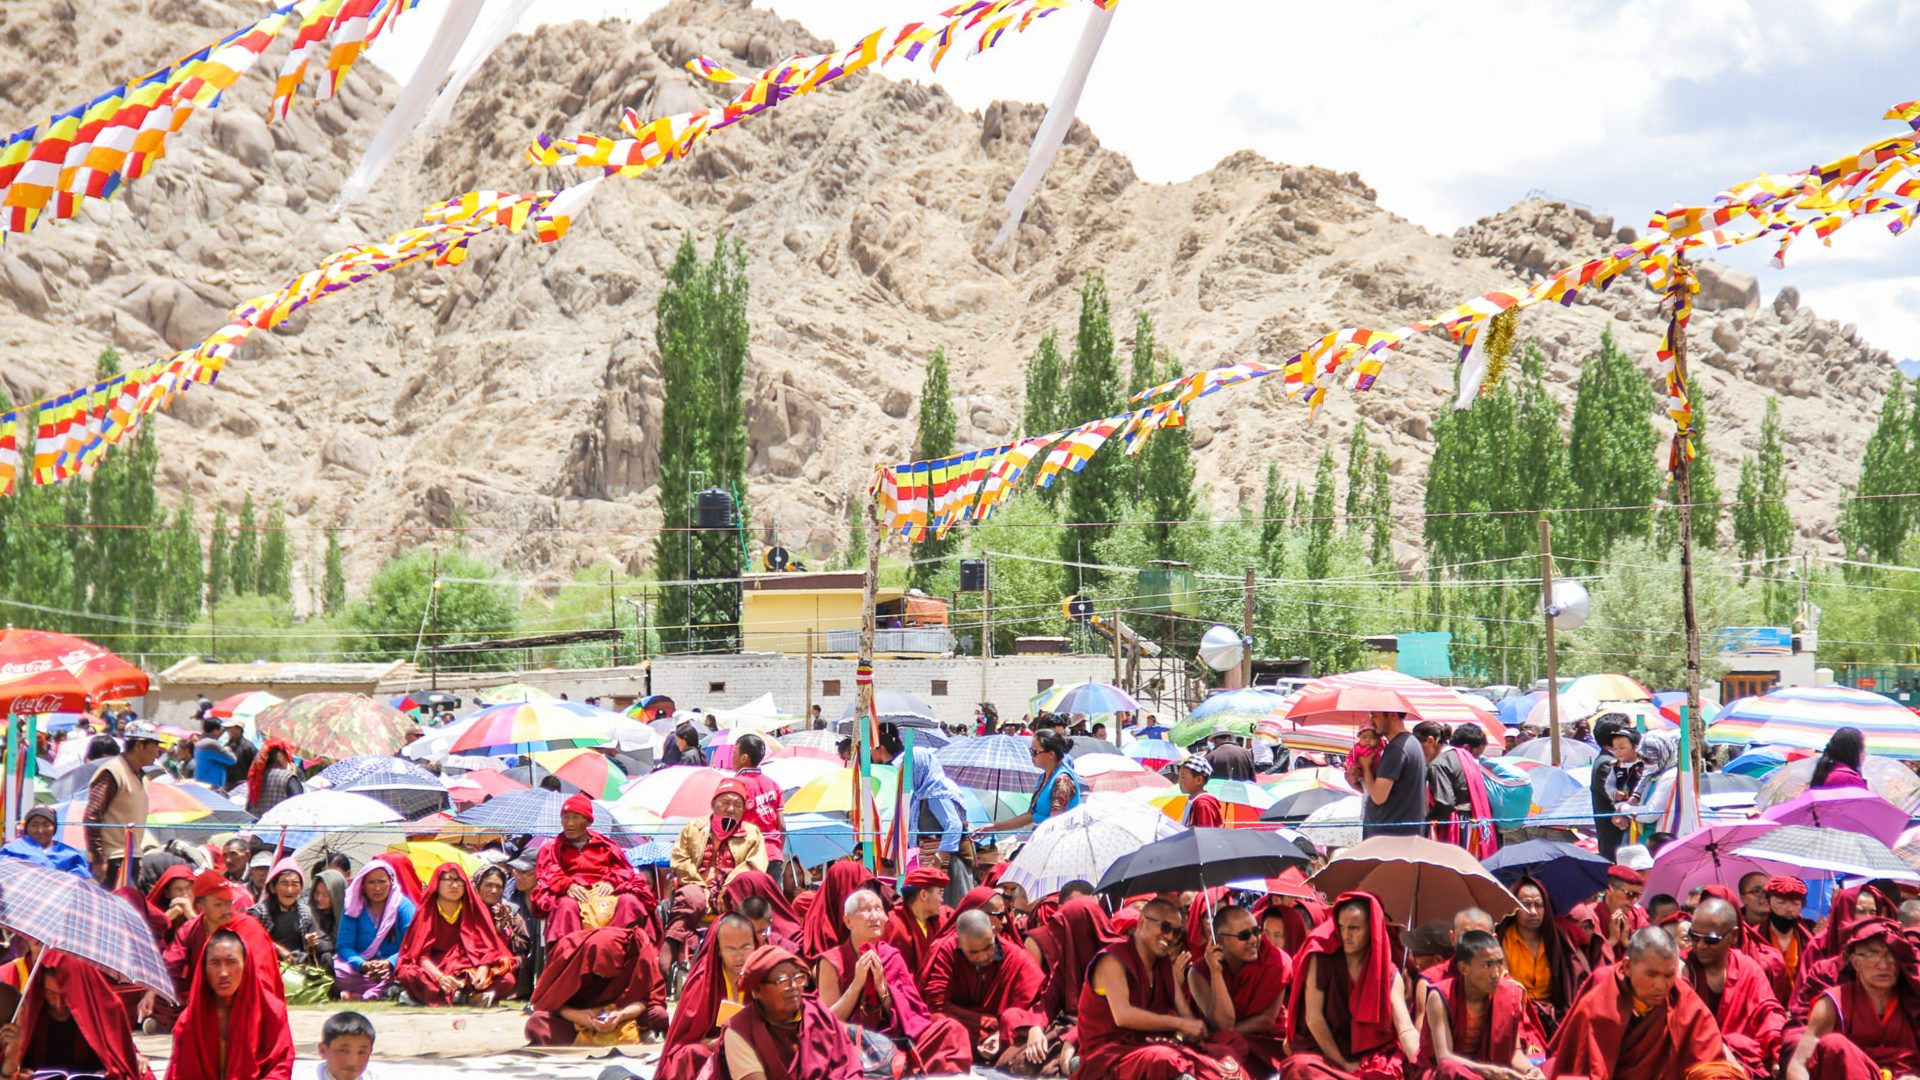 Monks in their traditional red robes can be seen sitting on the ground at the Buddhist festival in Ladakh in the Himalayas